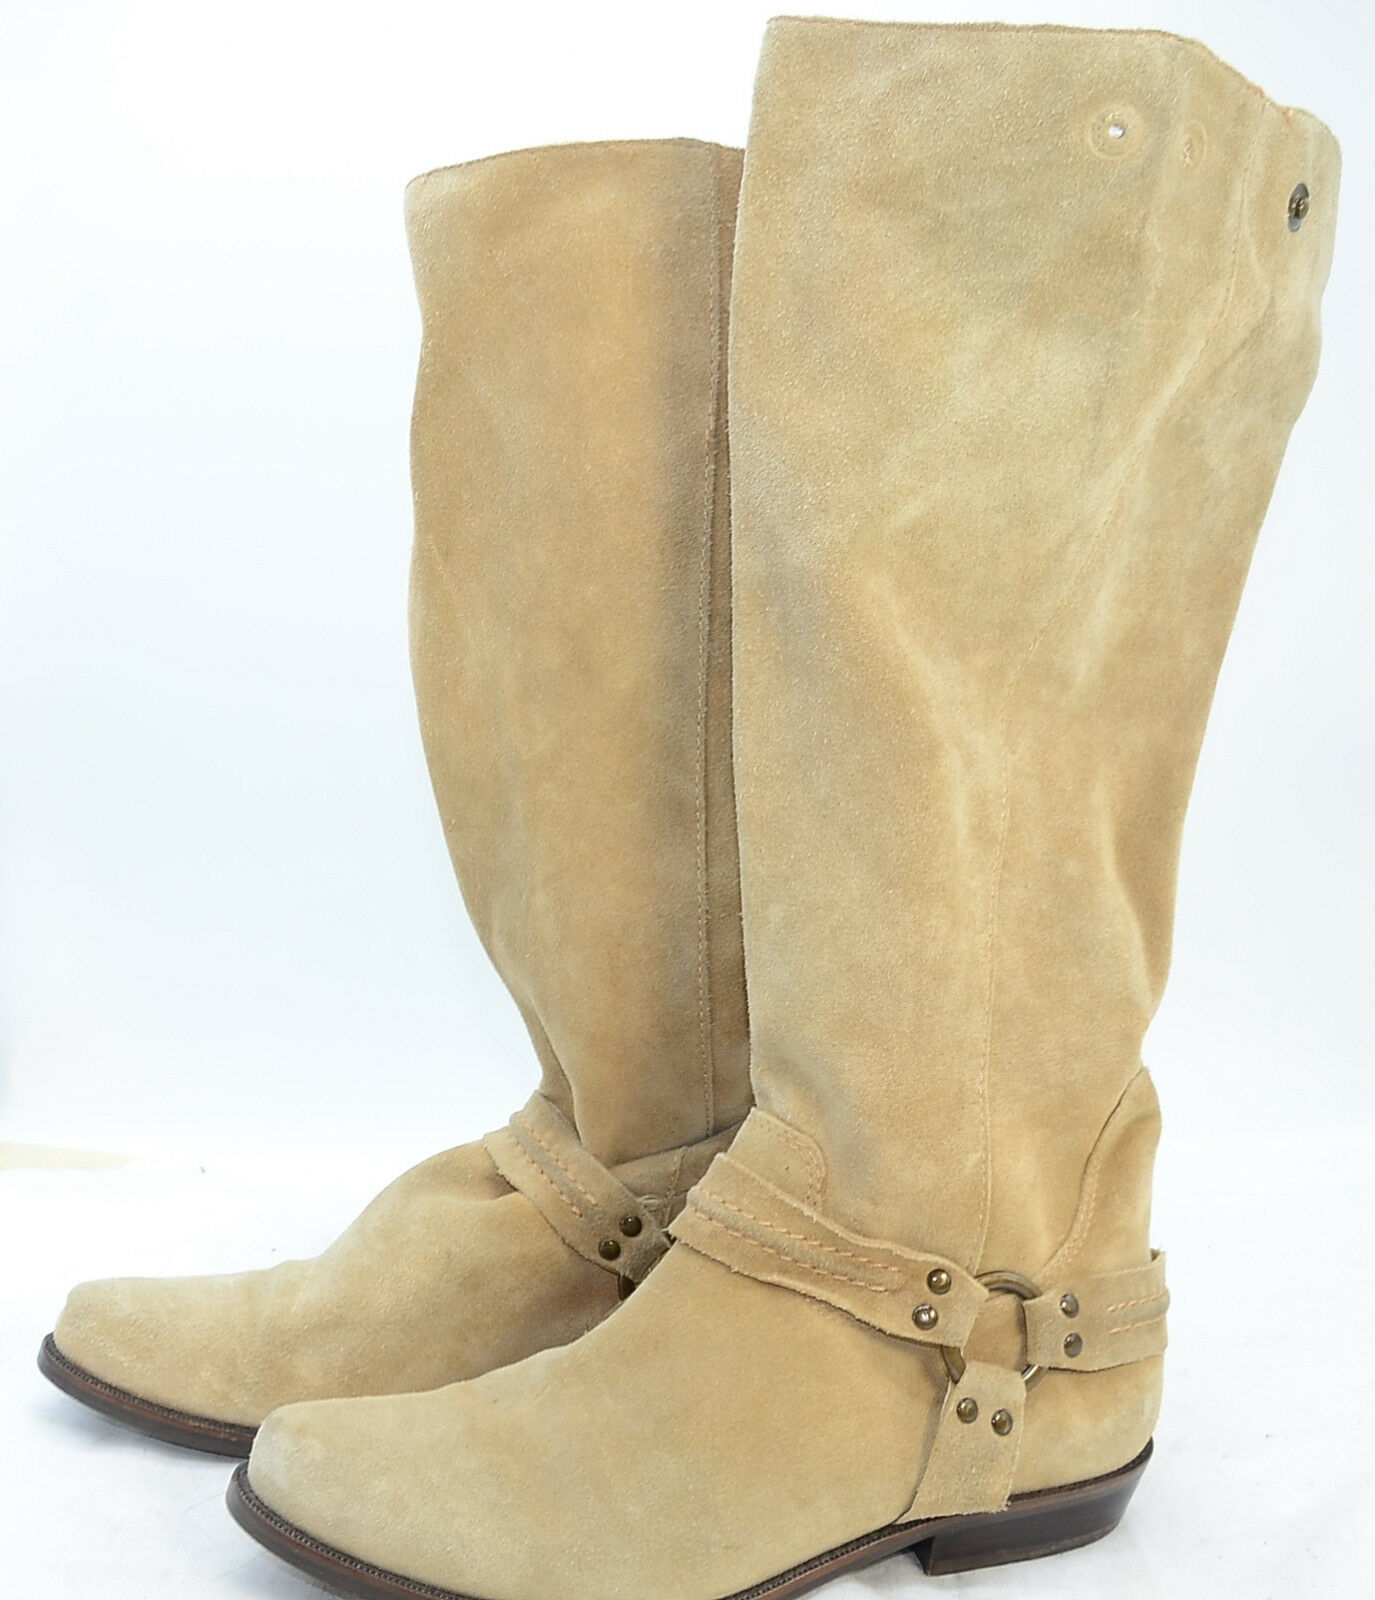 Franco Sarto Collection Suede Leather Equestrian Riding Knee High Boots Sz 9.5